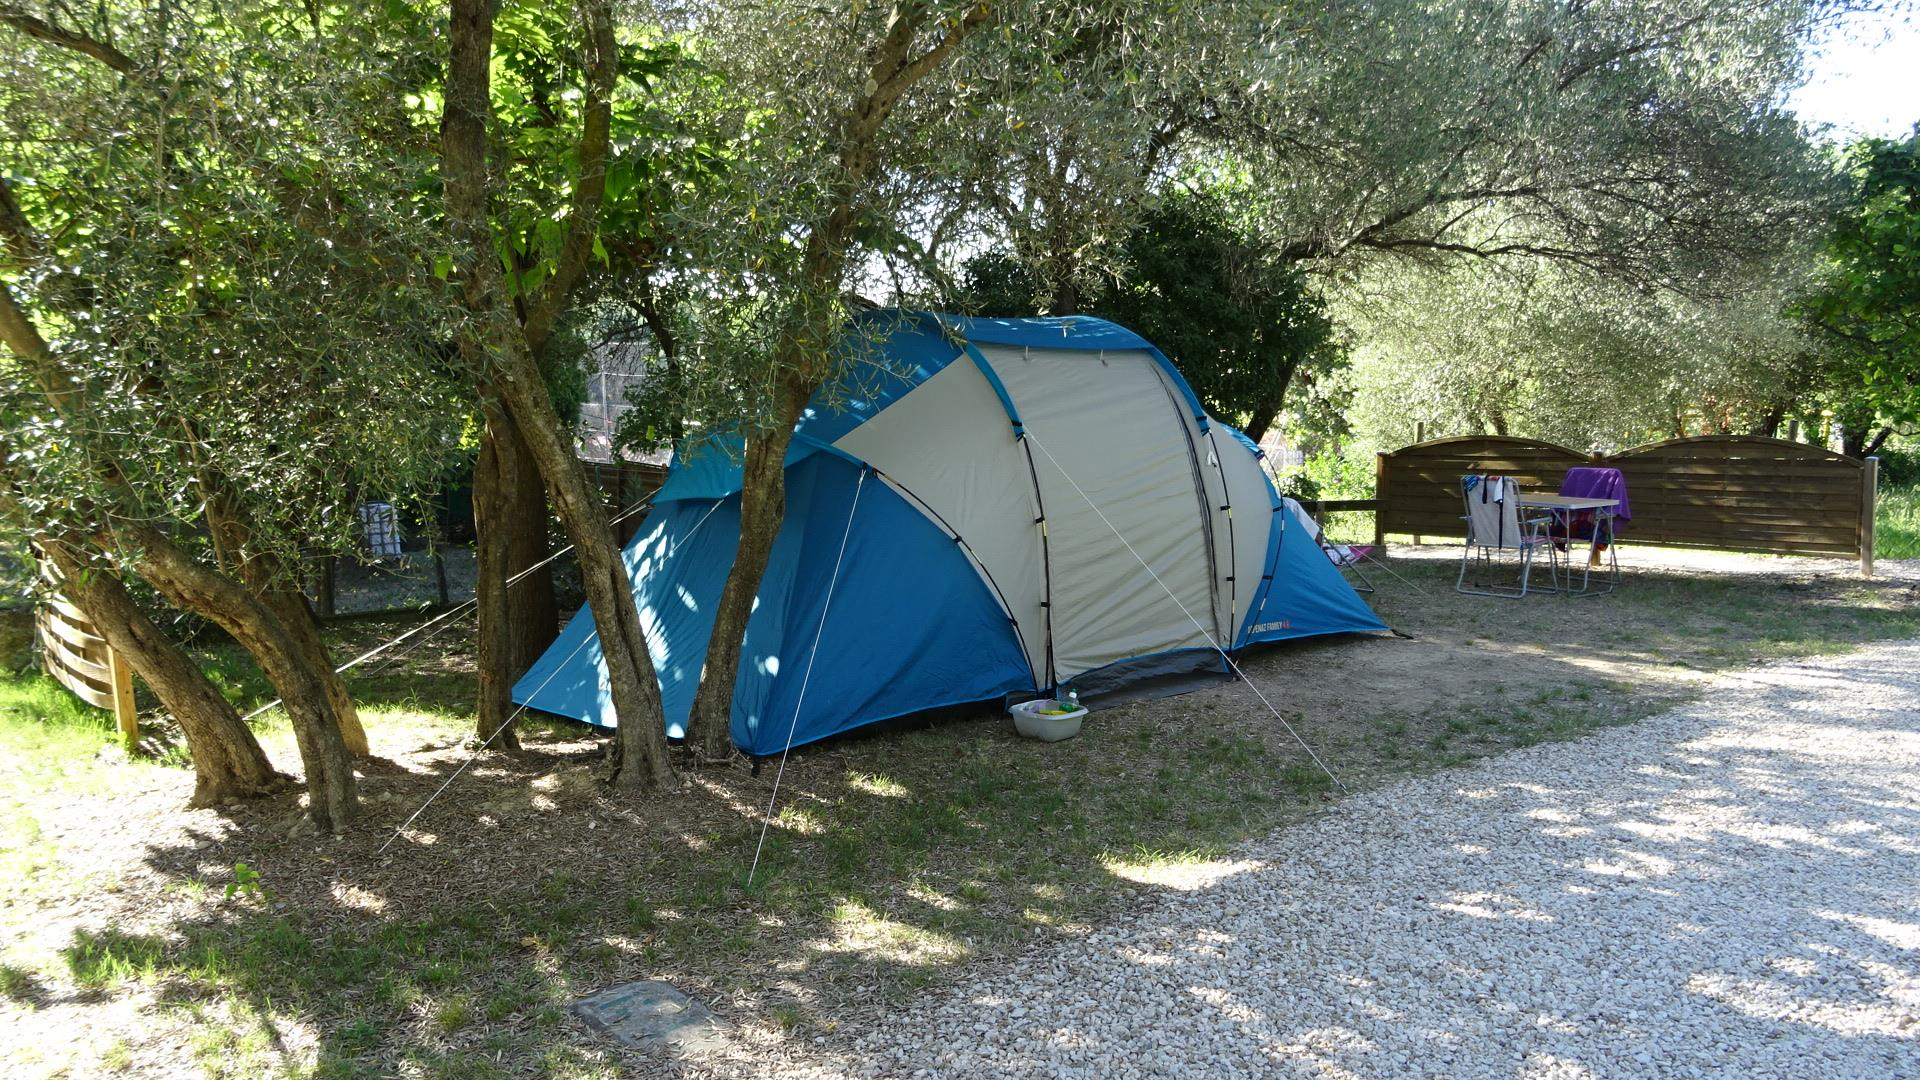 Emplacement - Forfait Emplacement - Camping L'Olivier